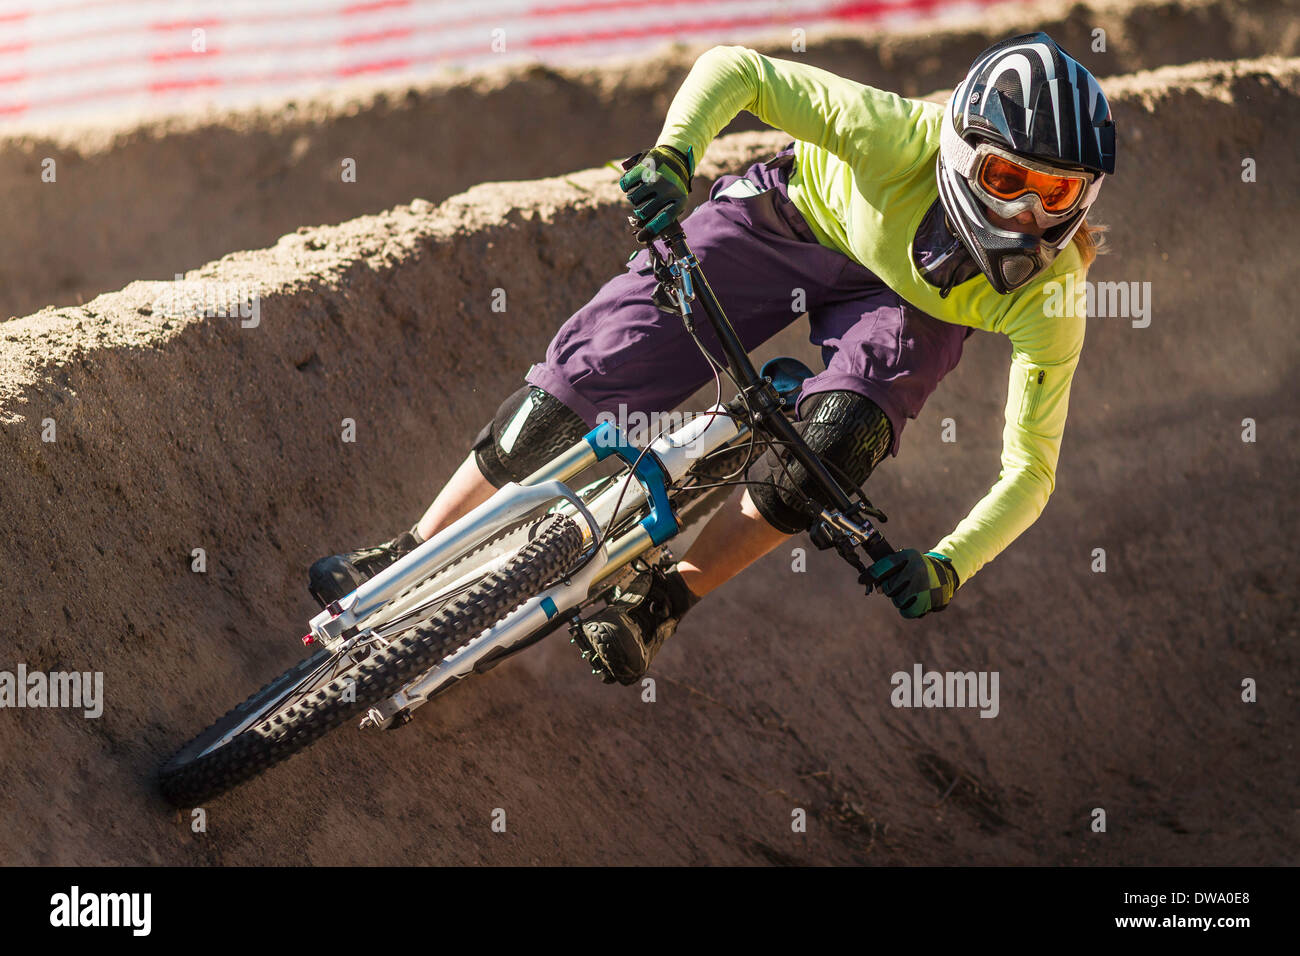 Young female mountainbiker racing in Sea Otter Classic Mountainbike Festival on Laguna Seca Raceway near Monterey - Stock Image